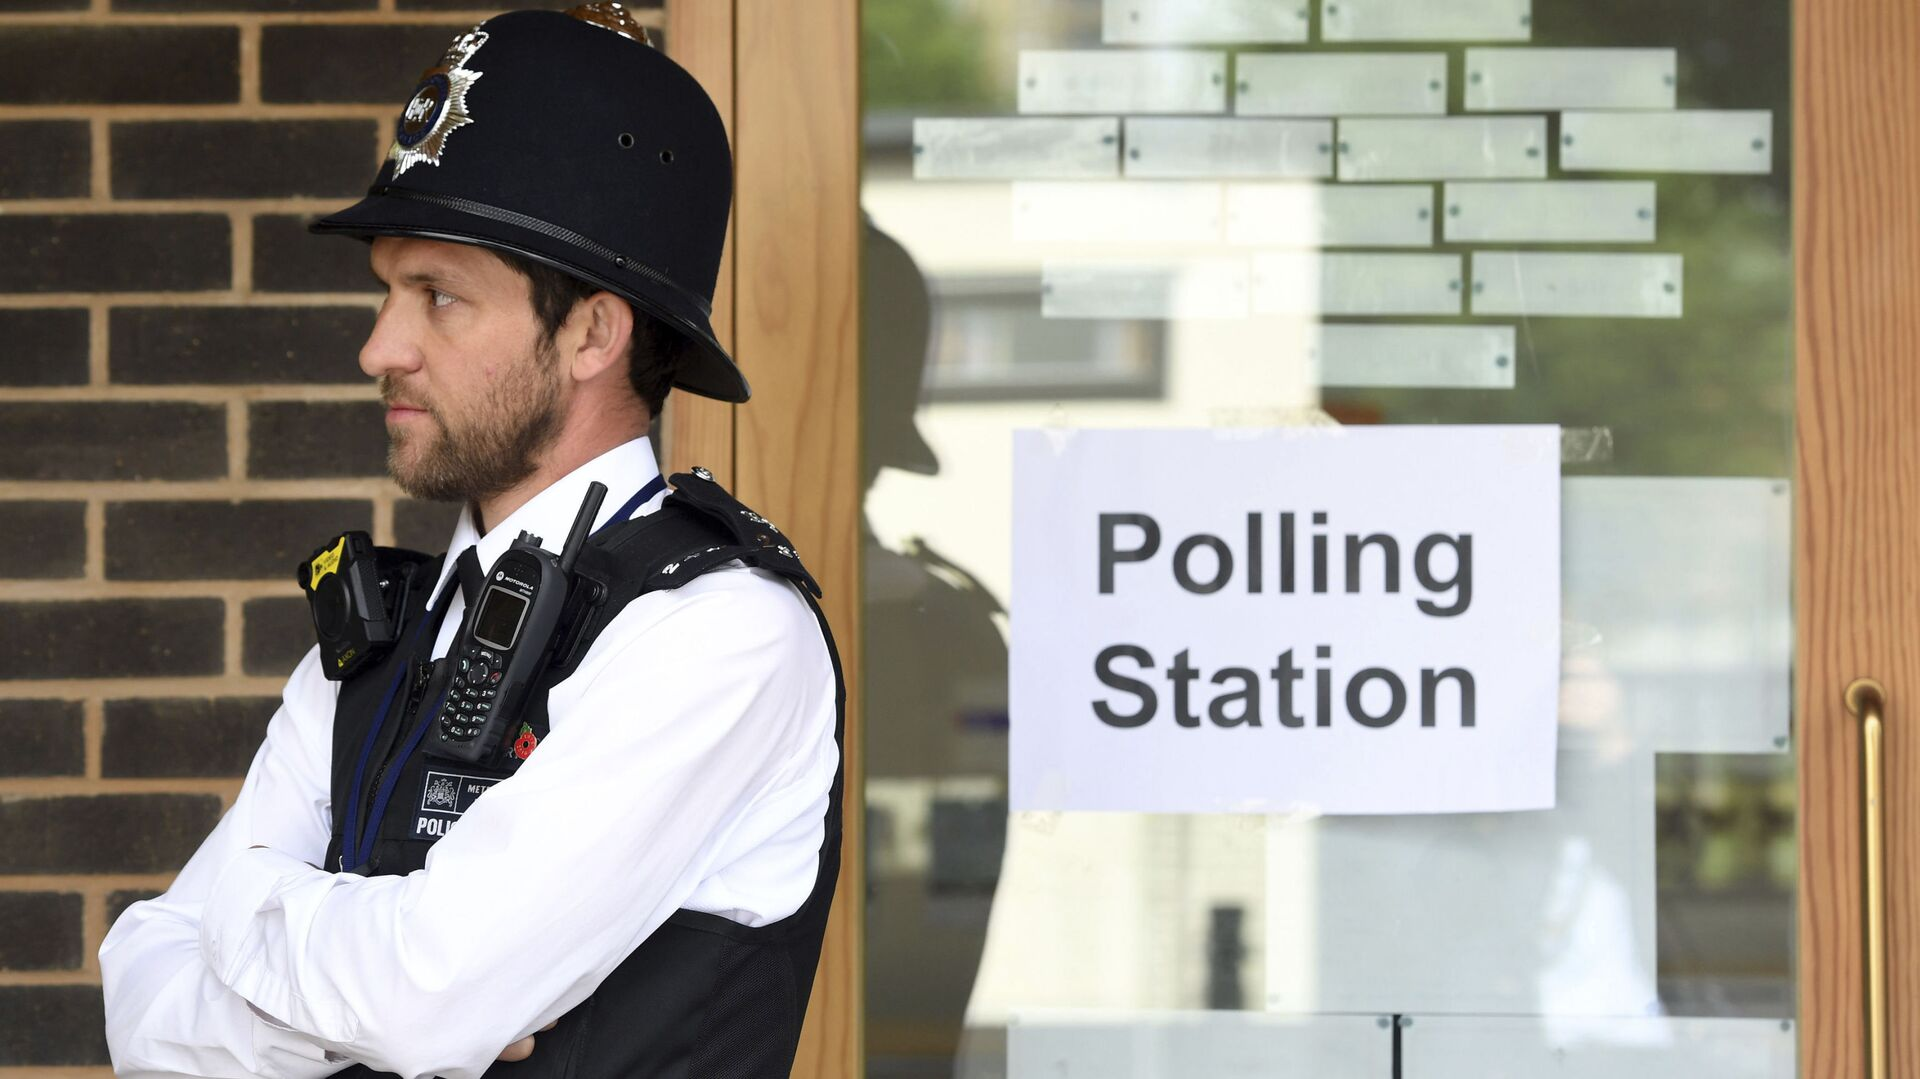 A police officer is stationed outside a polling station at Cubitt Town Infant and Junior School on the Isle of Dogs in London, as people cast their votes in the general election (File) - Sputnik International, 1920, 30.09.2021